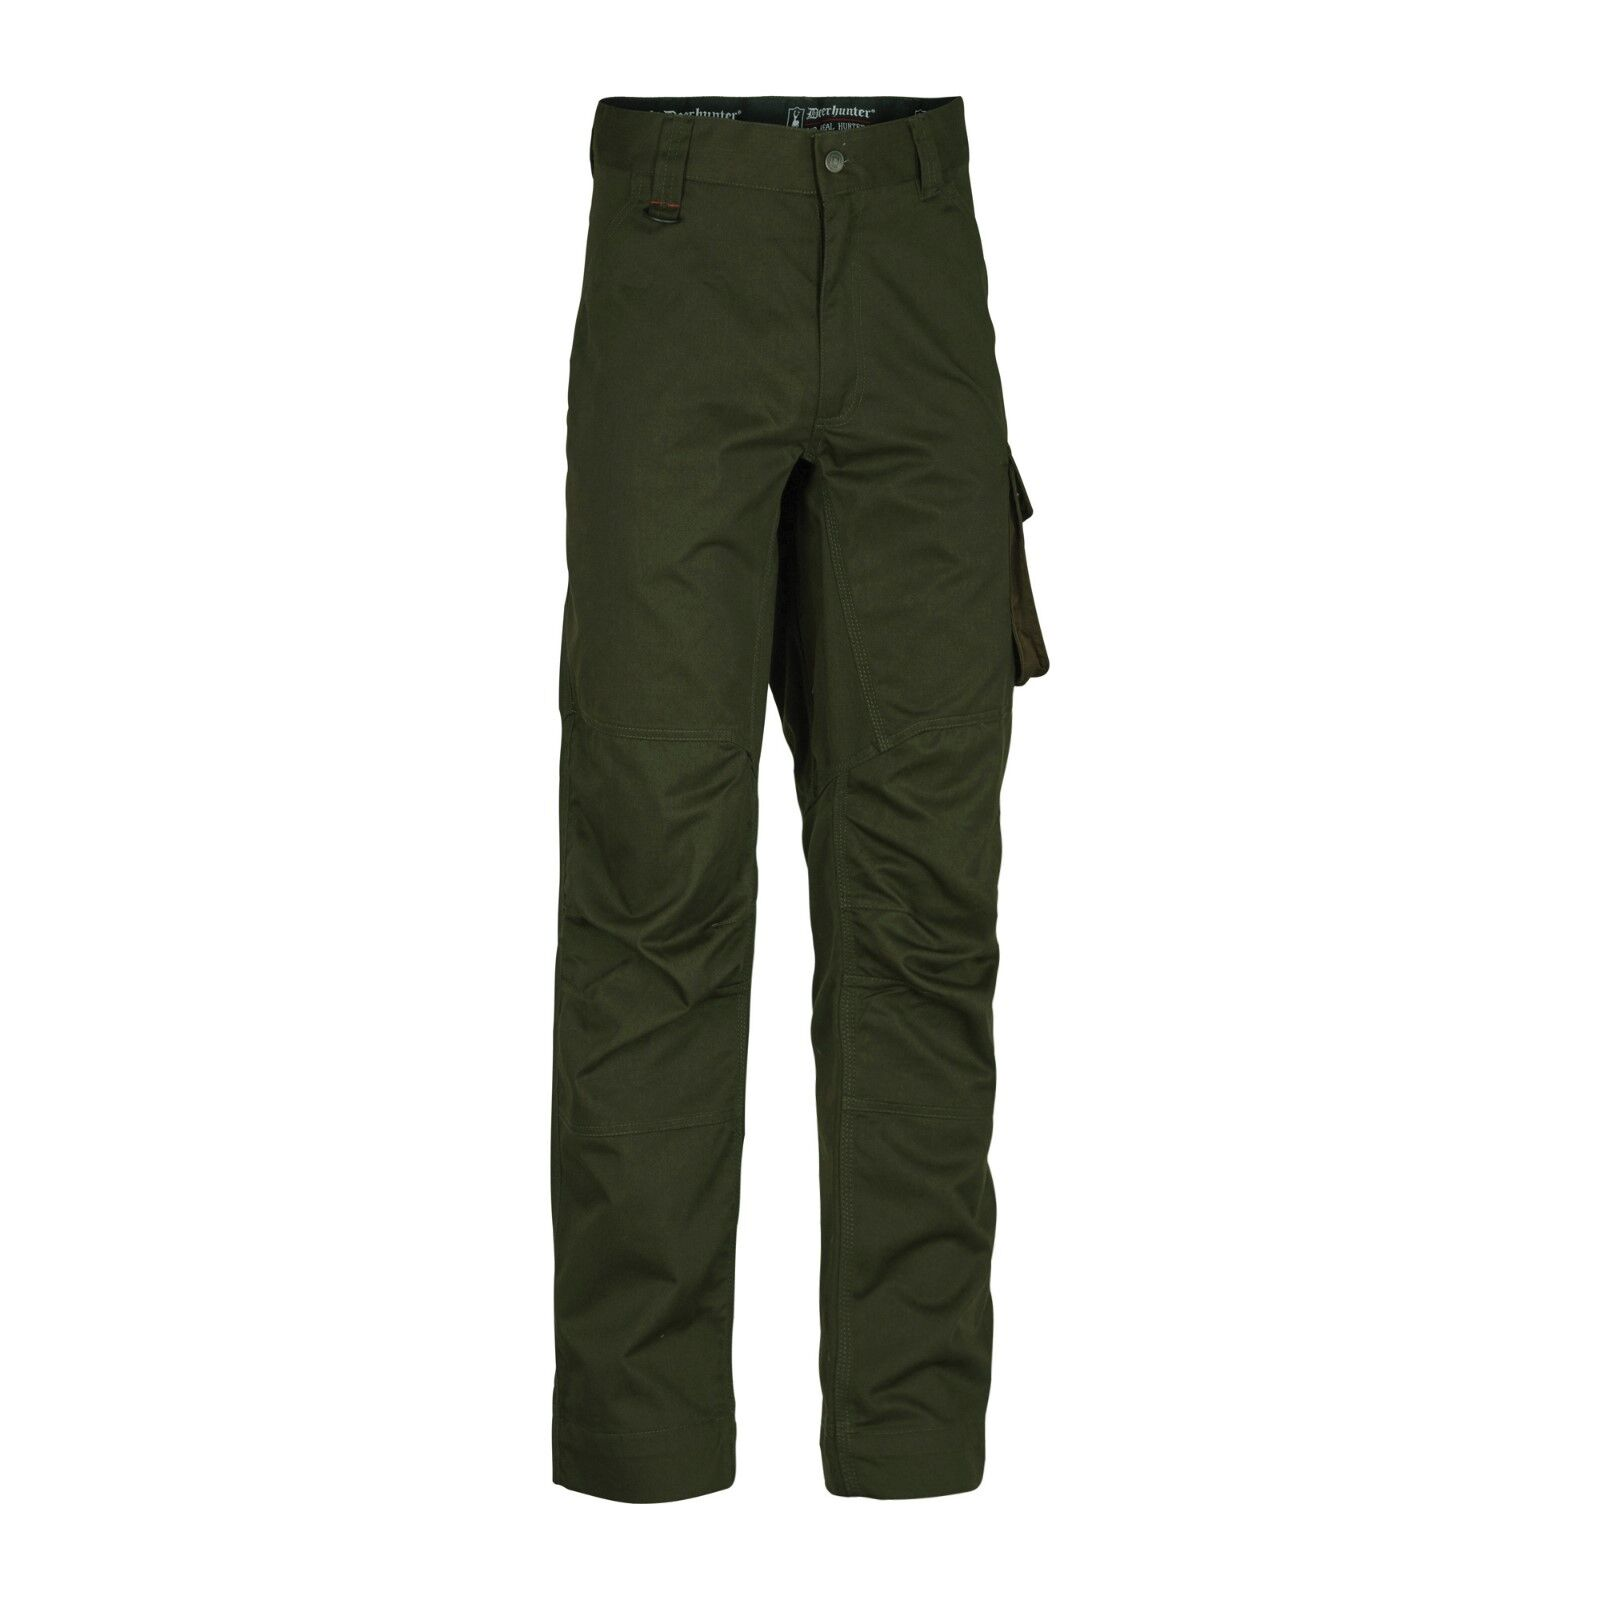 Deerhunter Rogaland Trousers Adventure Green 353DH Country Hunting Shooting